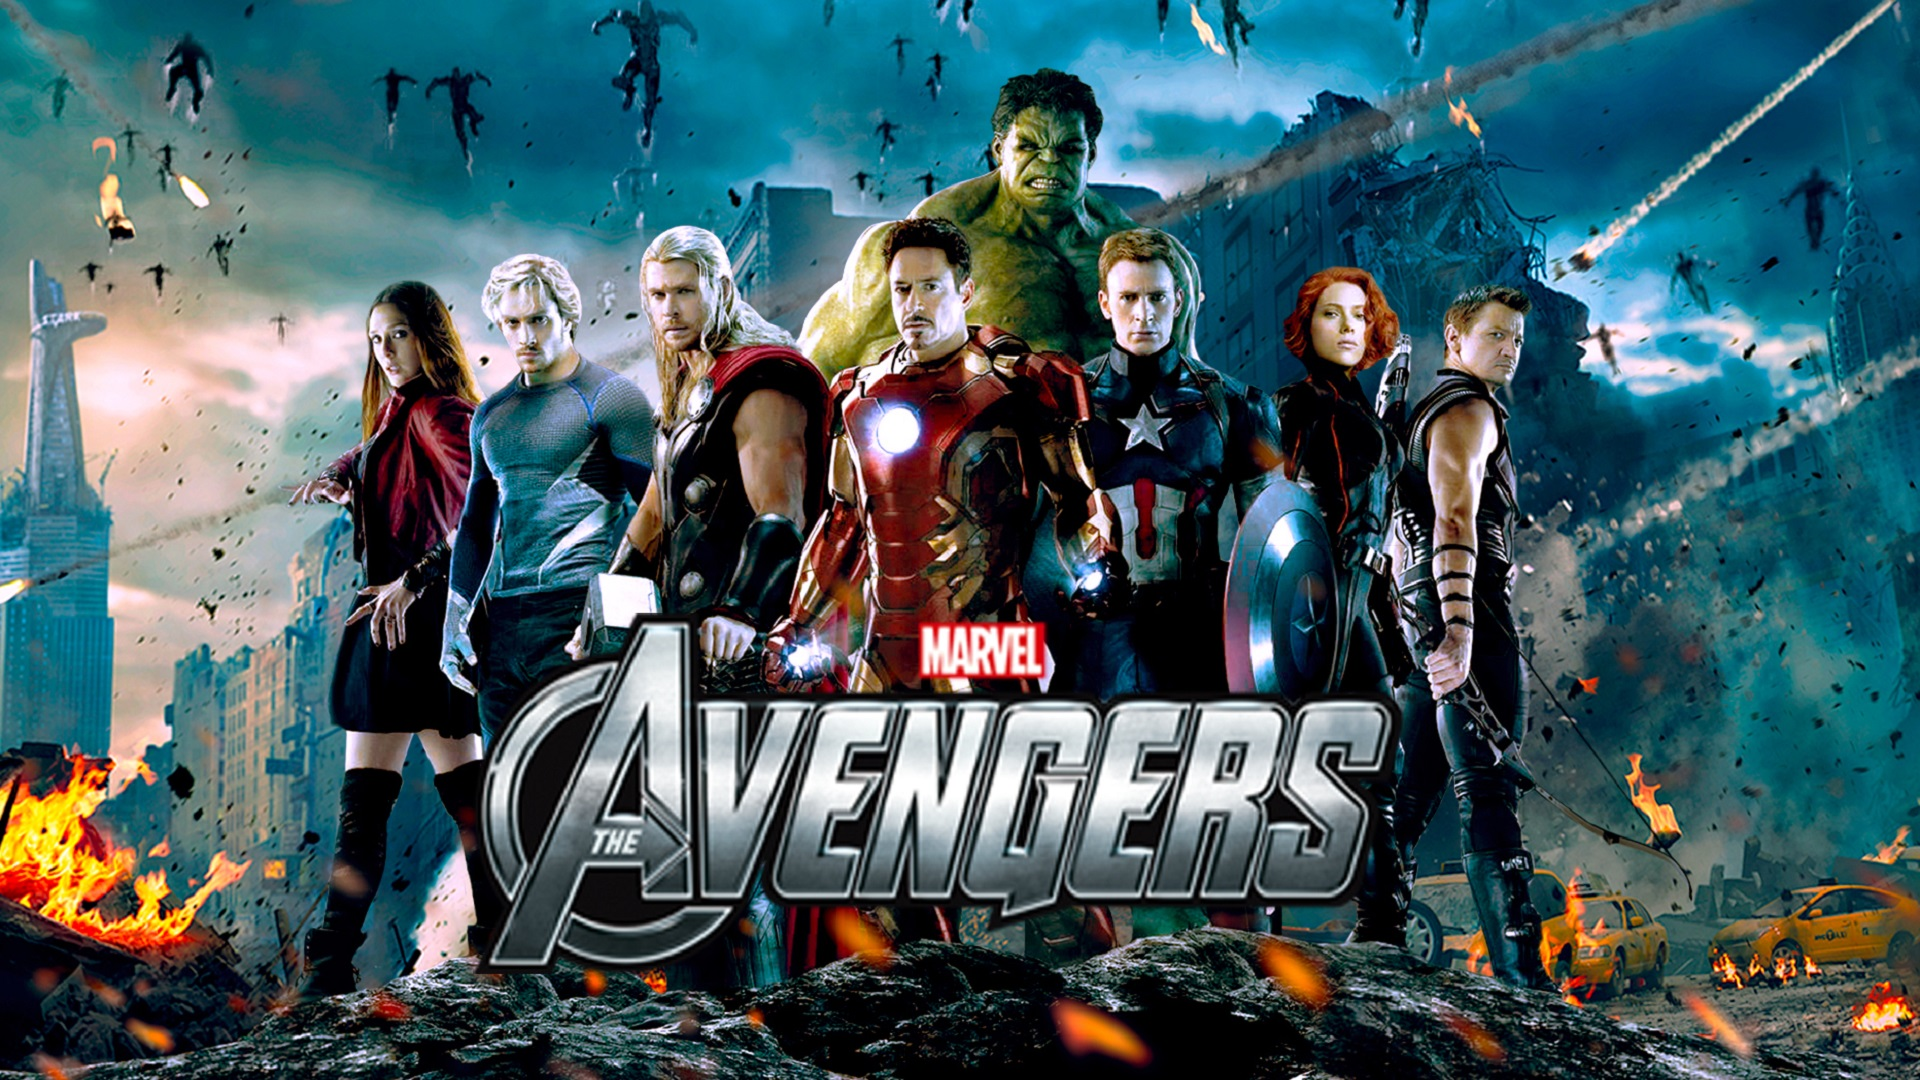 Save Marvel's The Avengers HD Wallpapers